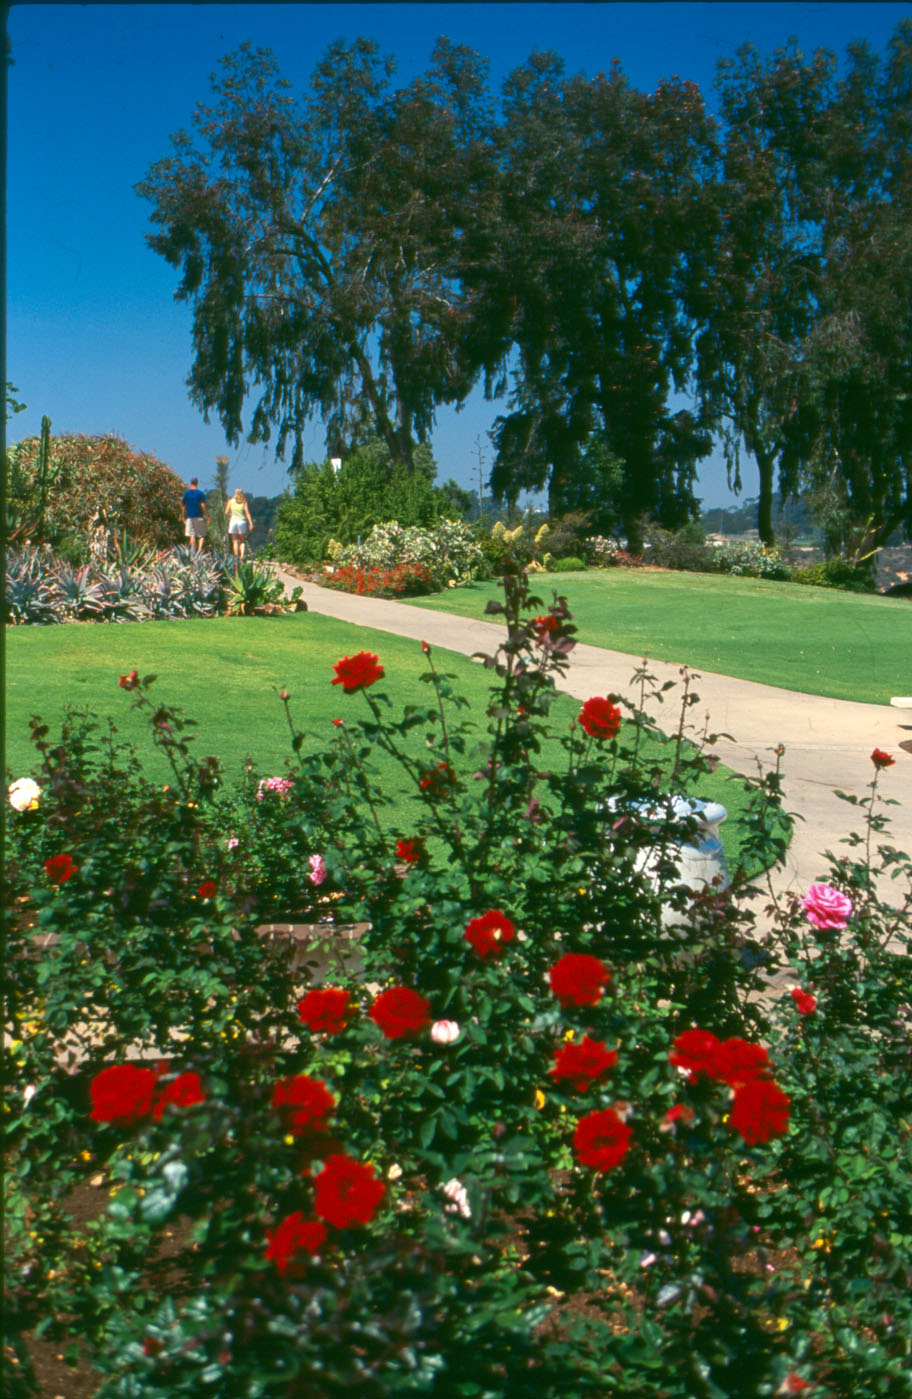 Balboa Park Rose Garden Needs Volunteers August 16 2016